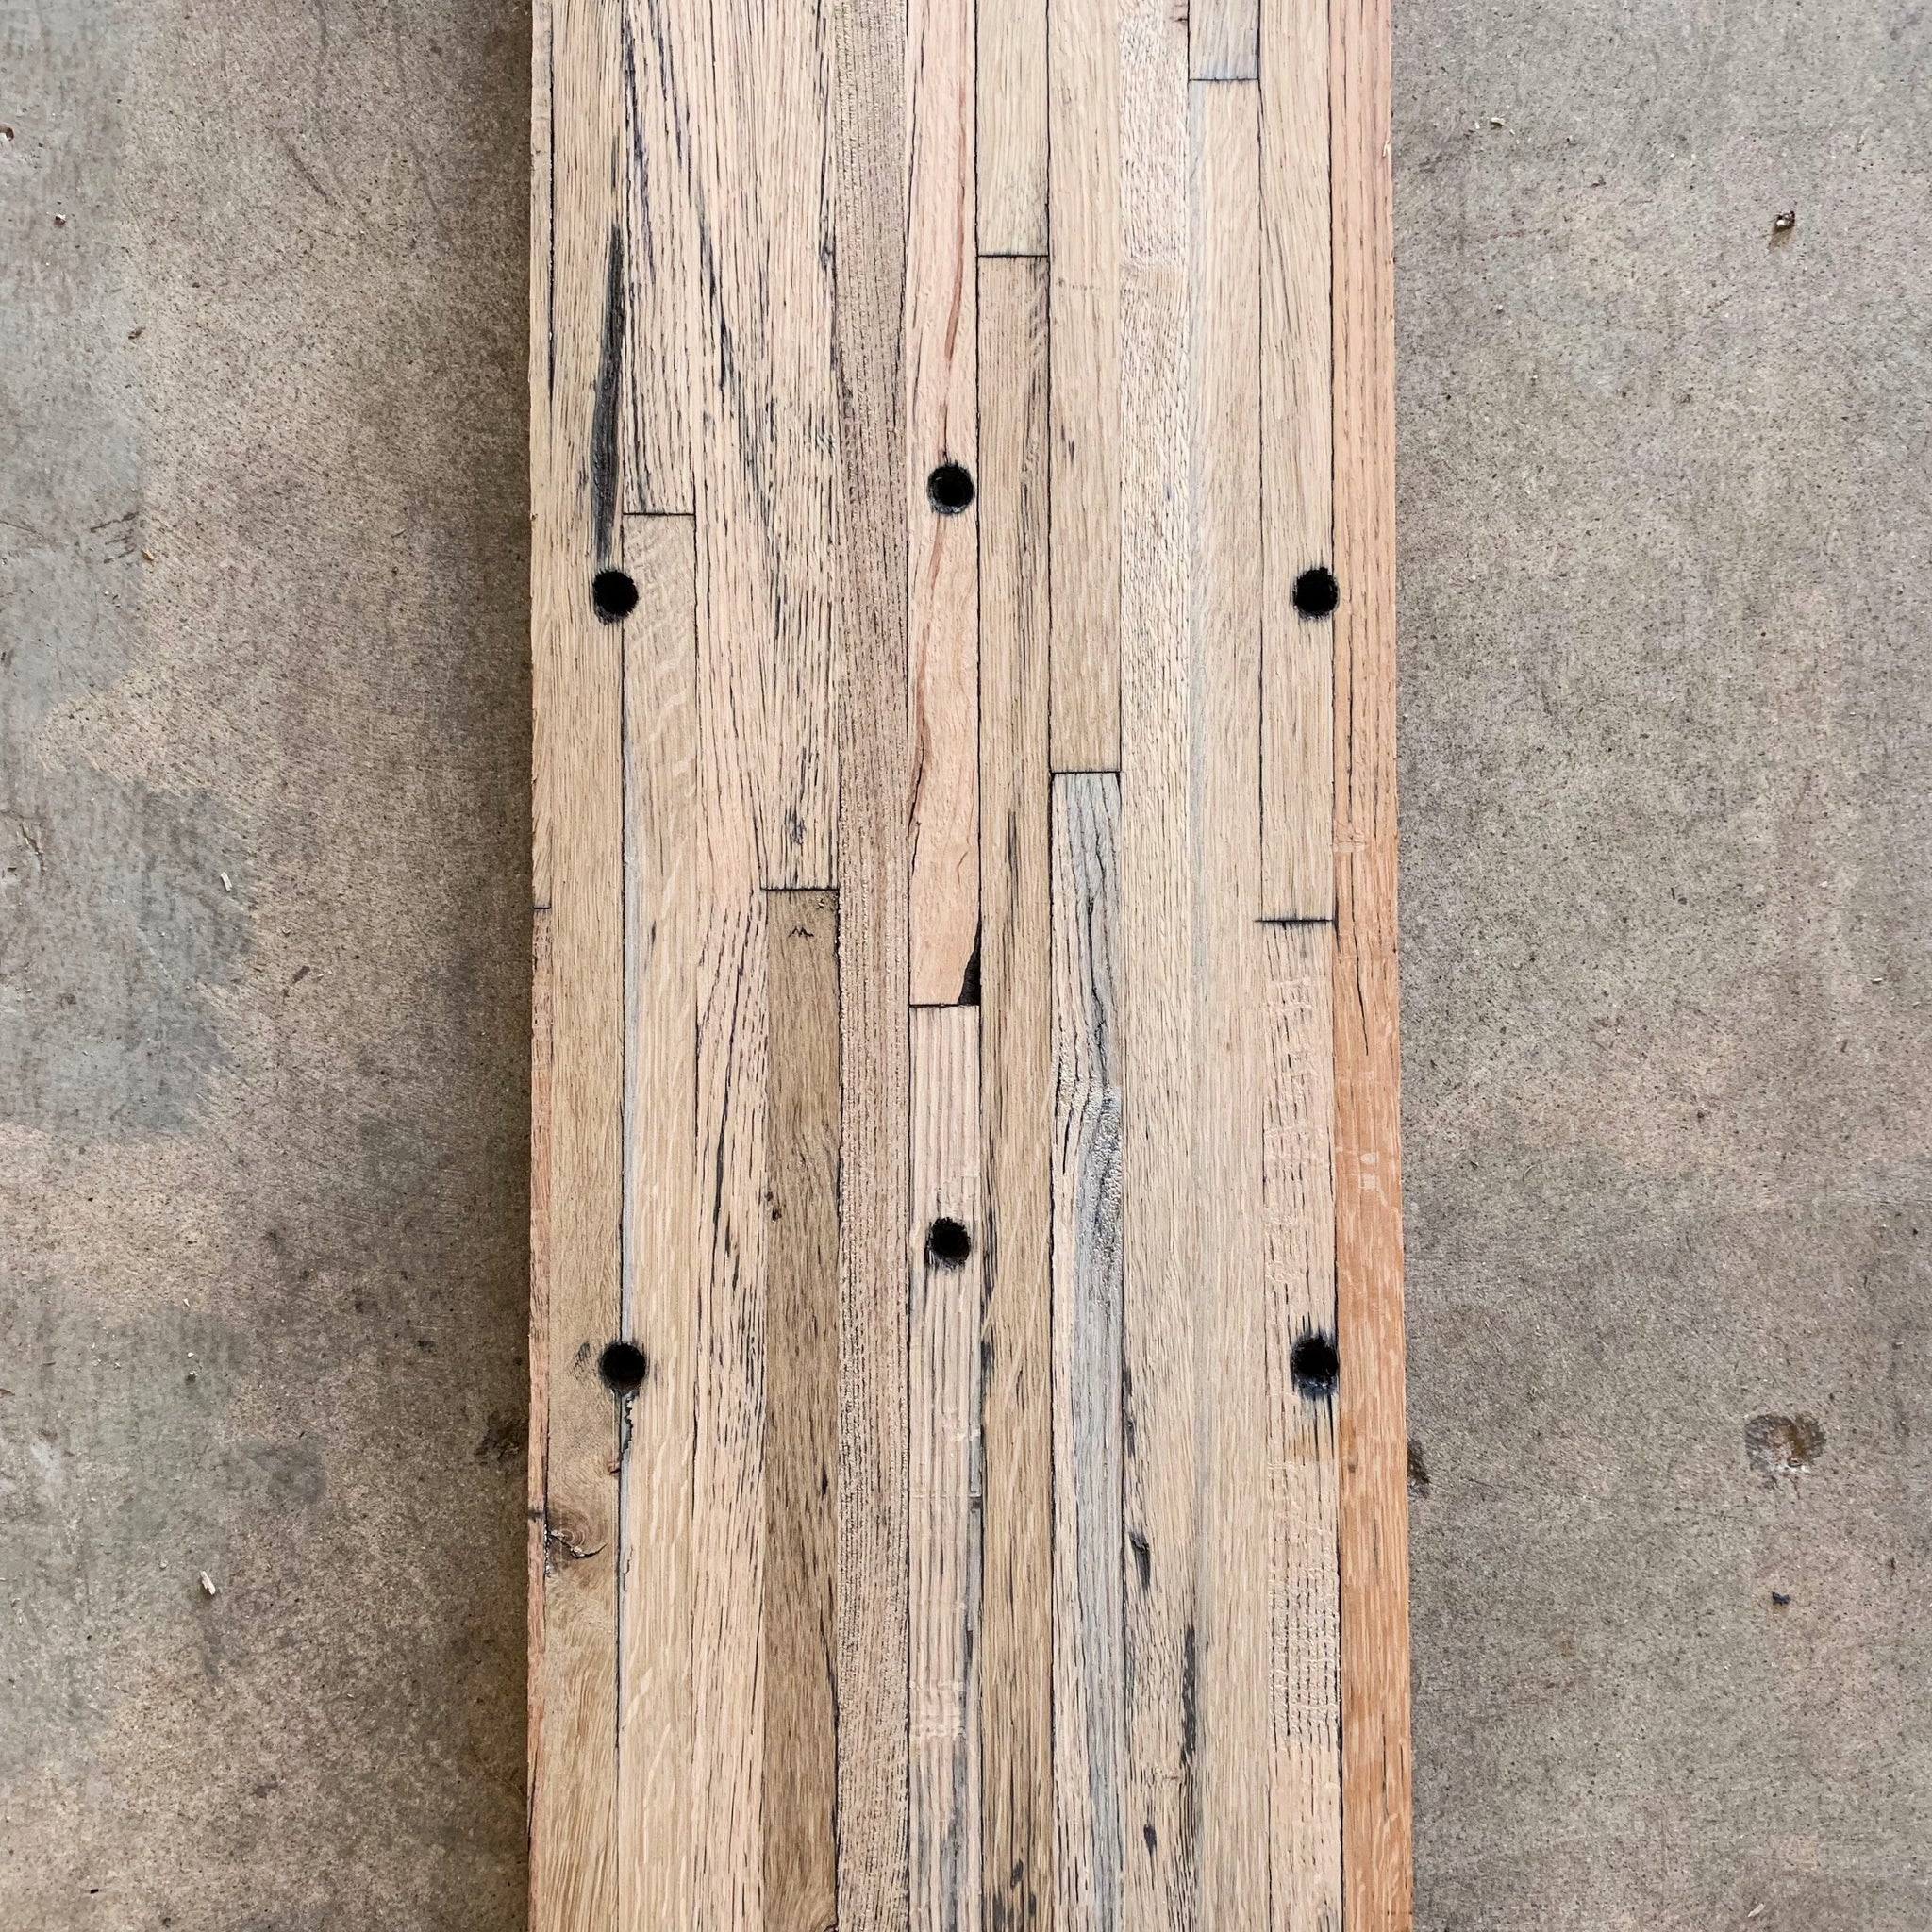 Reclaimed Oak Butcher Block - Grade A, Edged & Planed